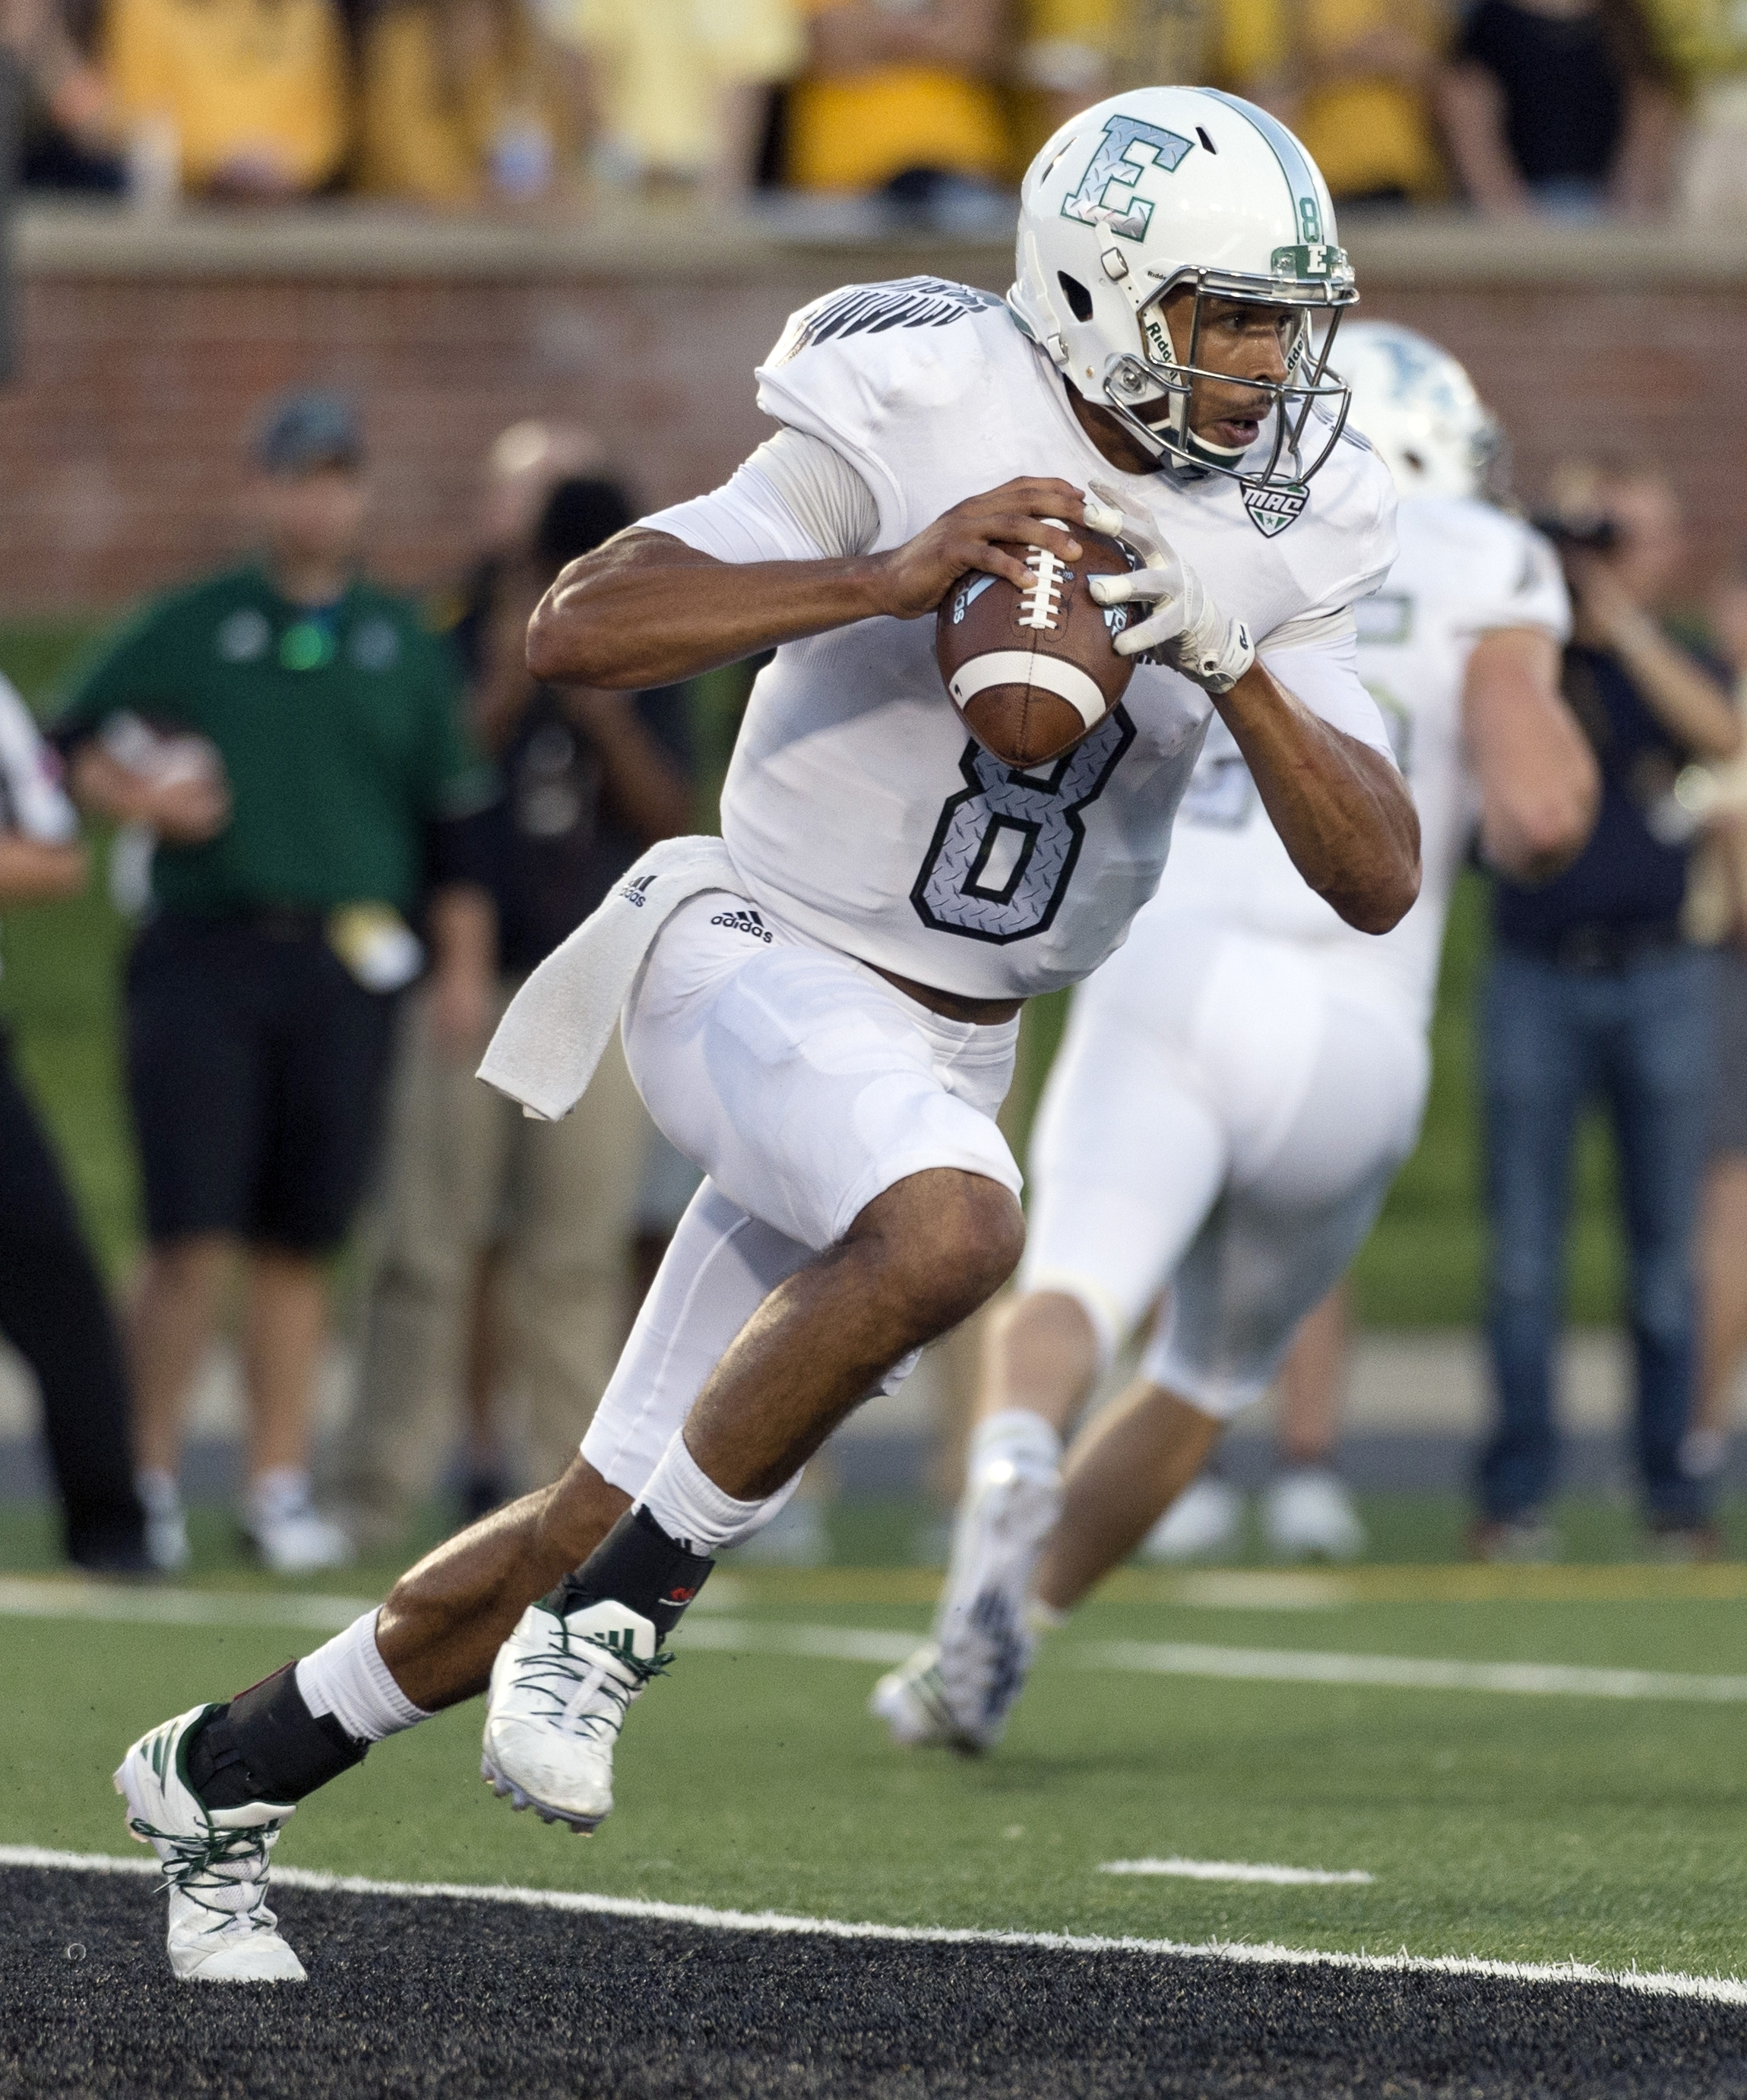 FILE- In this Sept. 10, 2016, file photo, Eastern Michigan quarterback Todd Porter scrambles out of the pocket during the first quarter of an NCAA college football game against Missouri, in Columbia, Mo. After a turbulent offseason in which the school hie